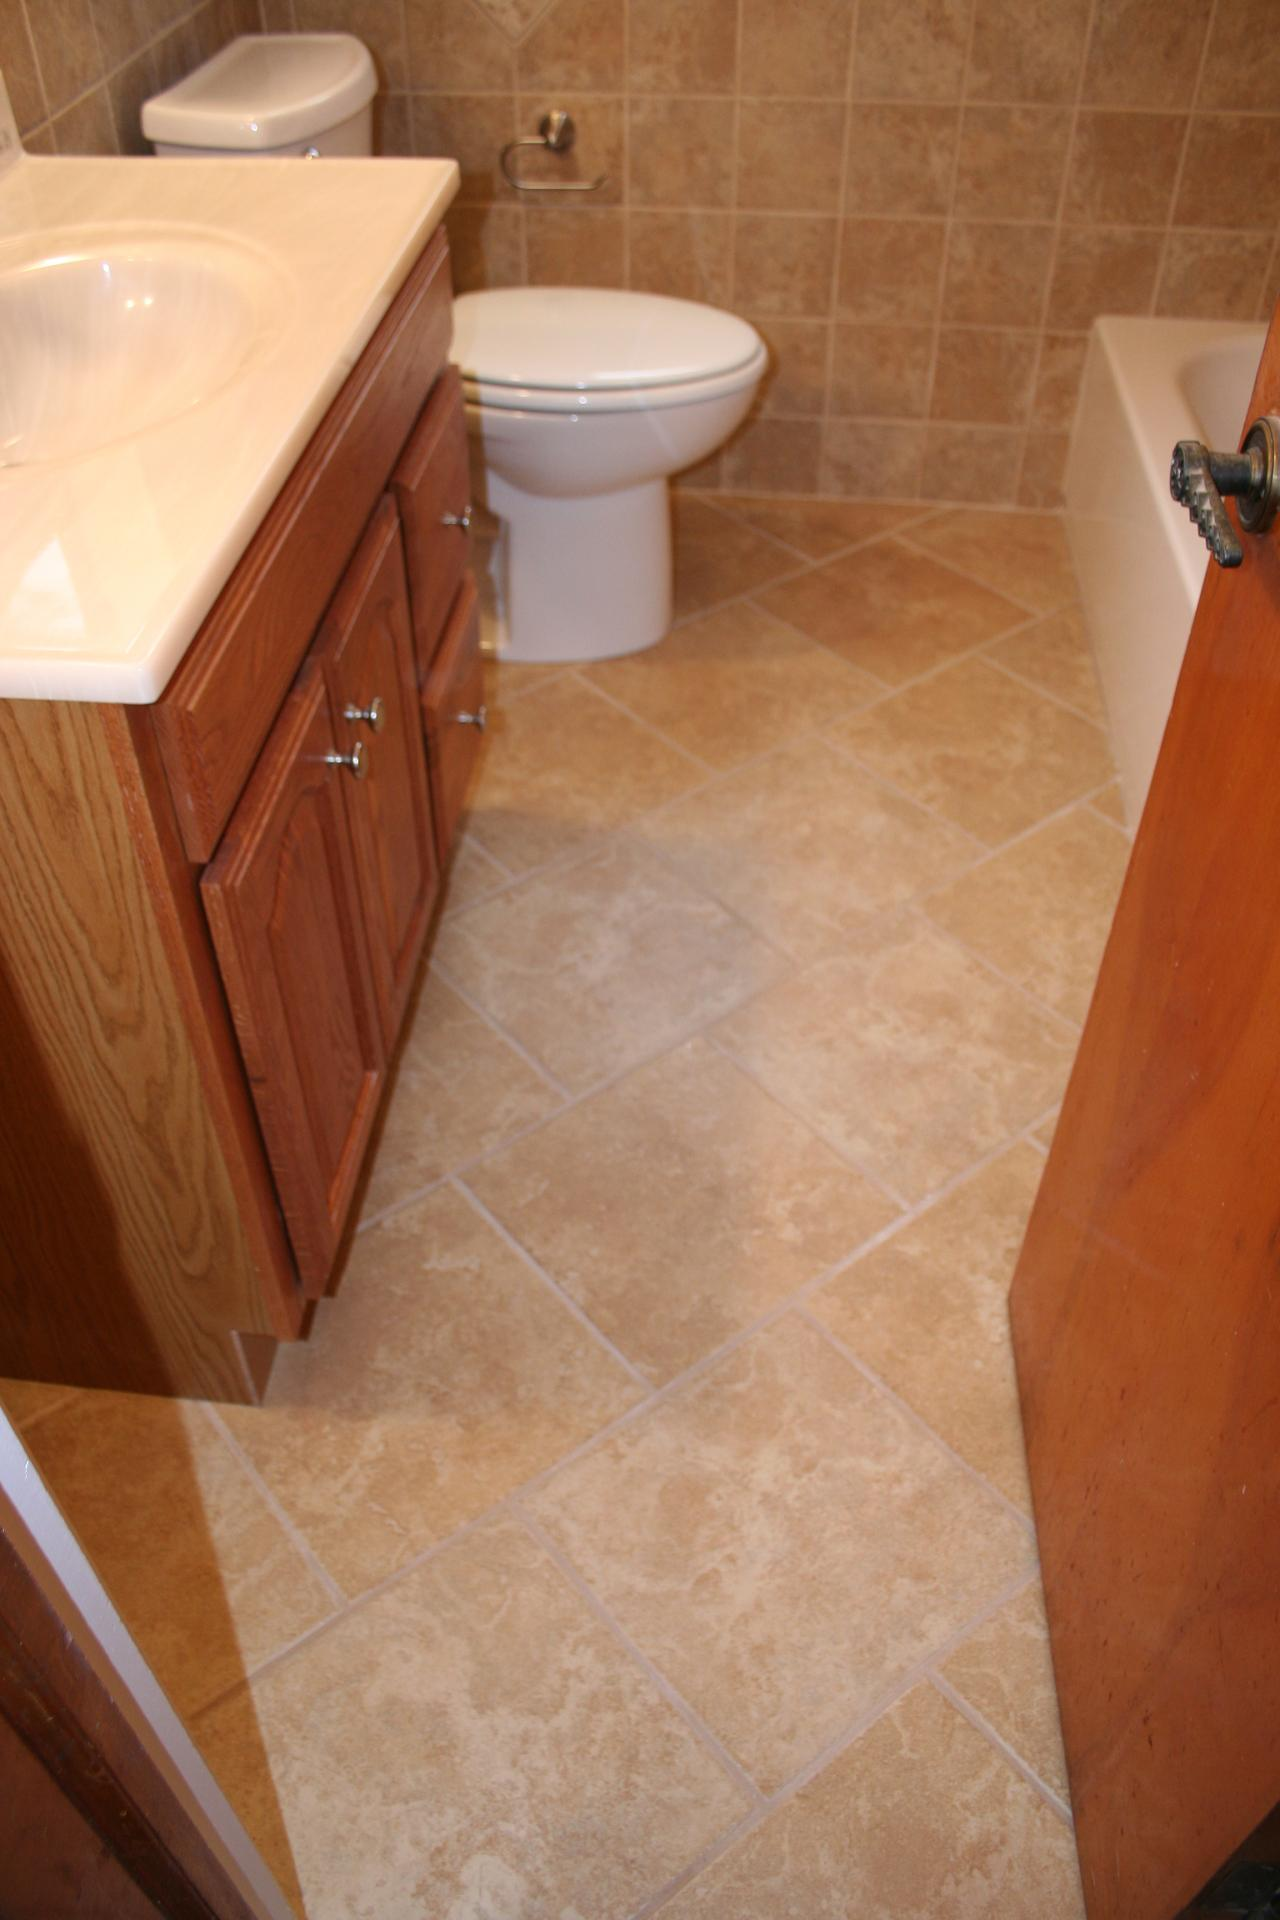 Small Bathroom Diagonal 12 Inch Offset Tile Floor.